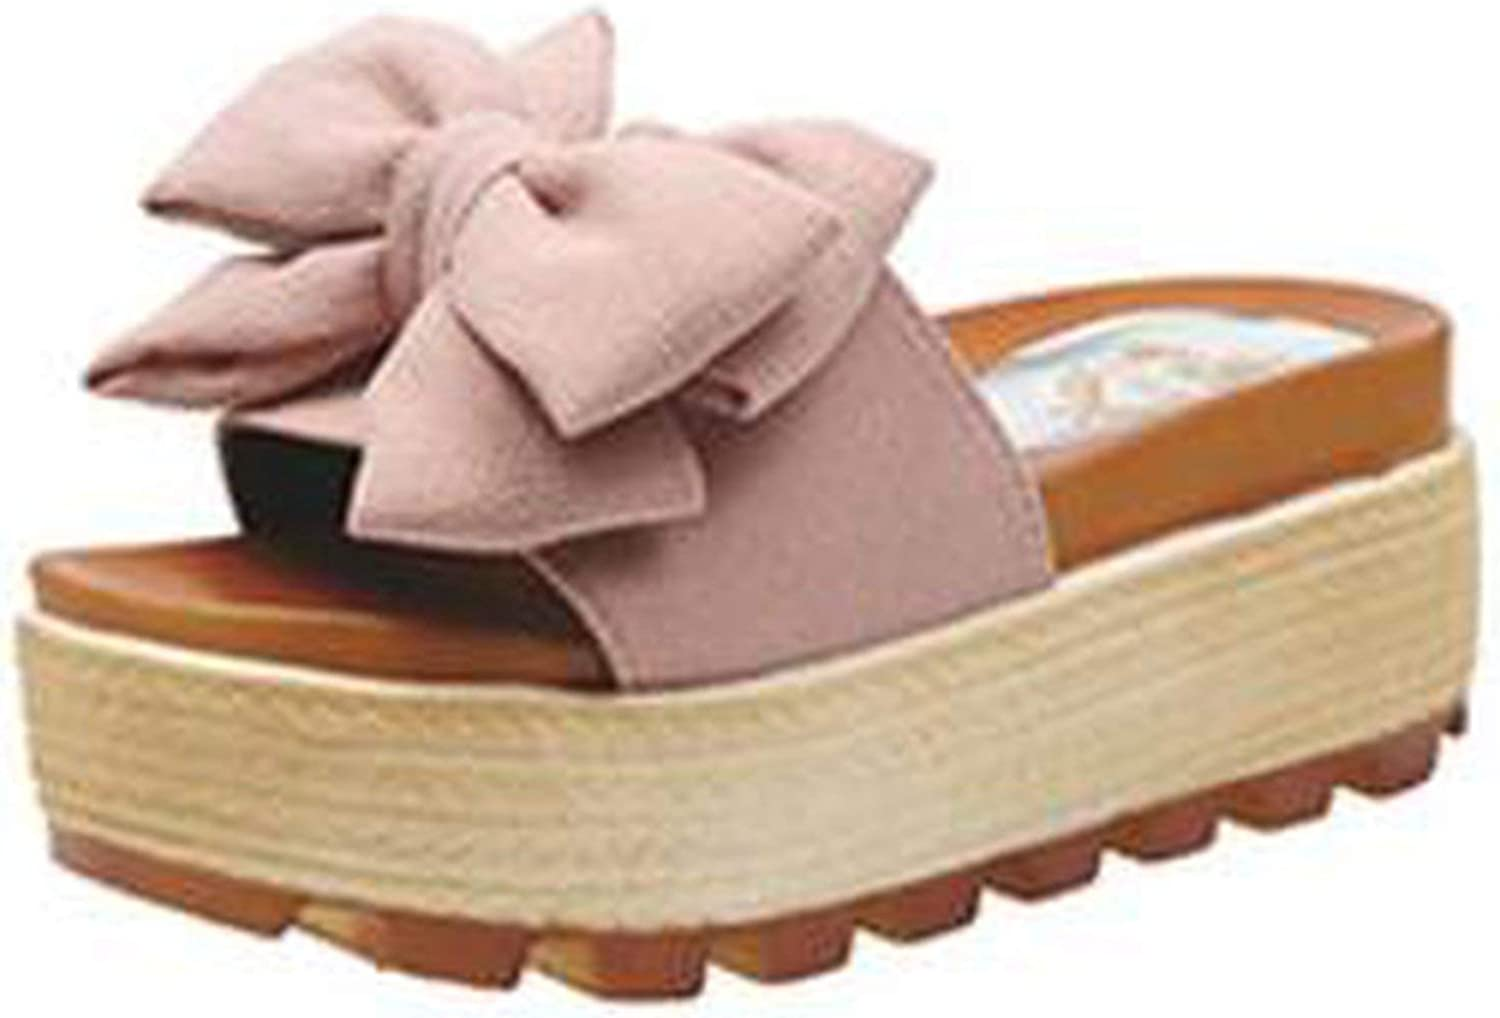 Sweet Bow-Knot Slippers high Heels Creepers Flats Cozy Slides Sandals Anti-Skid Beach shoes